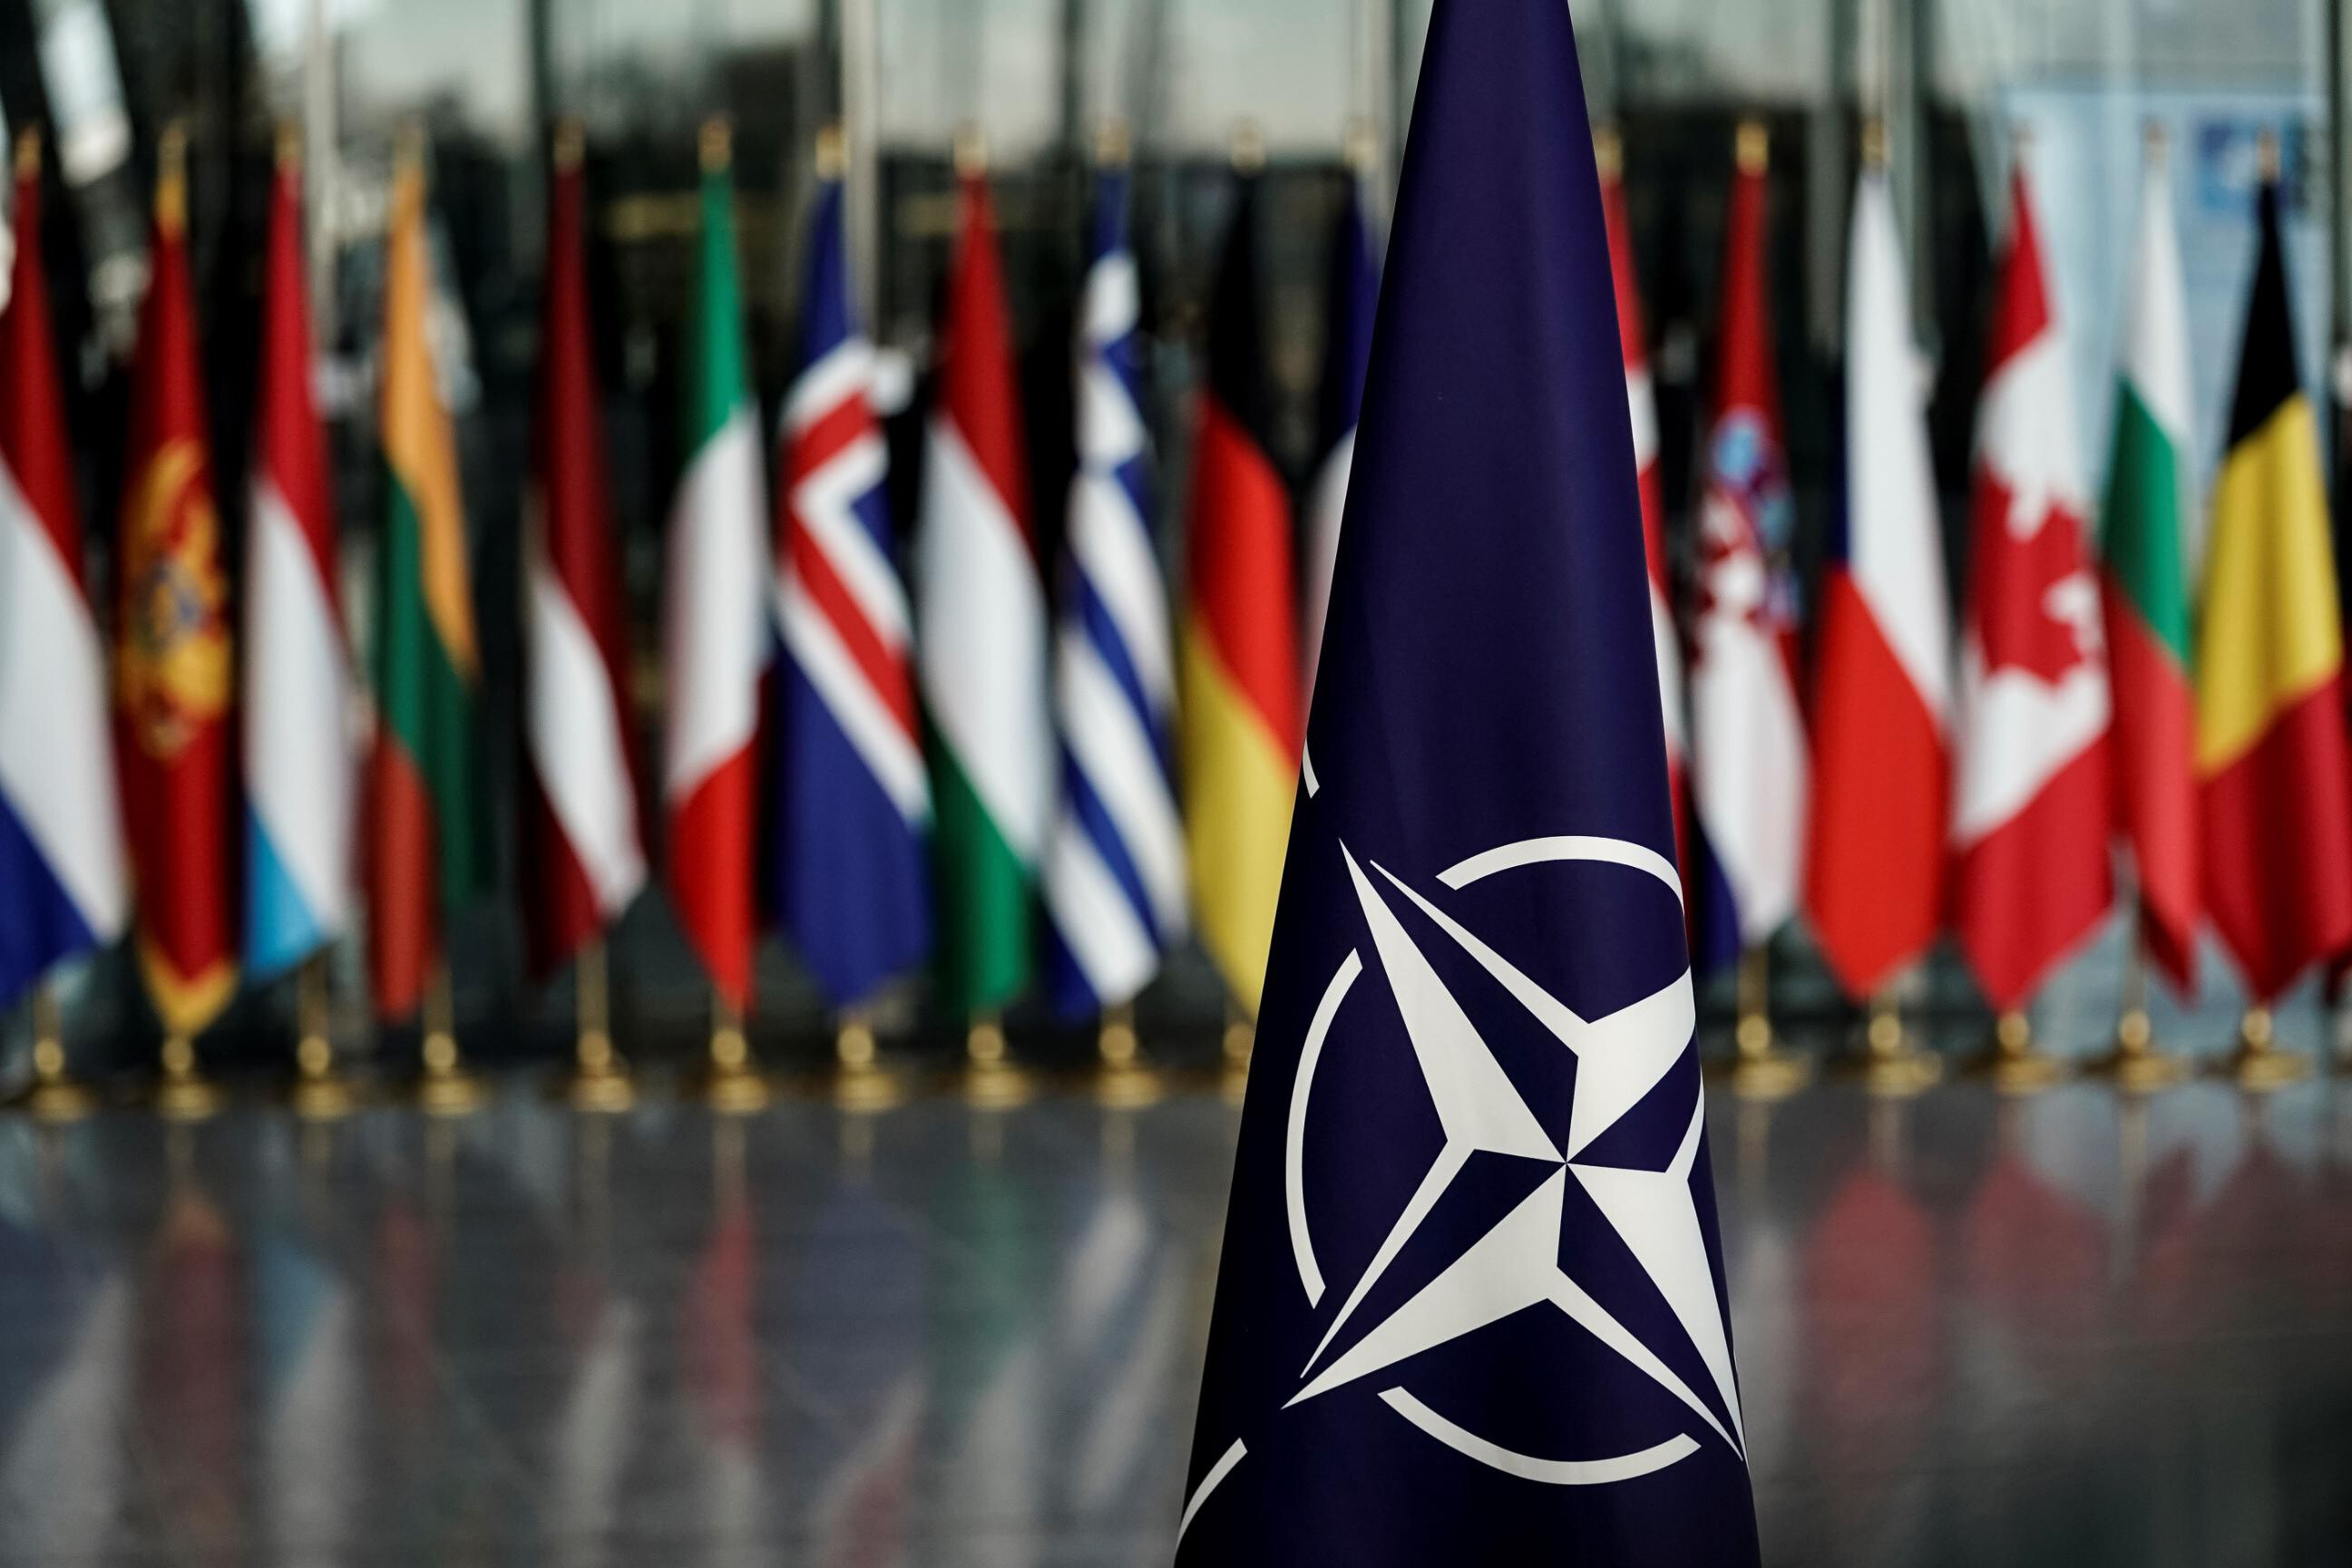 NATO expels 8 members of Russian mission in Brussels alleging they are intelligence officers